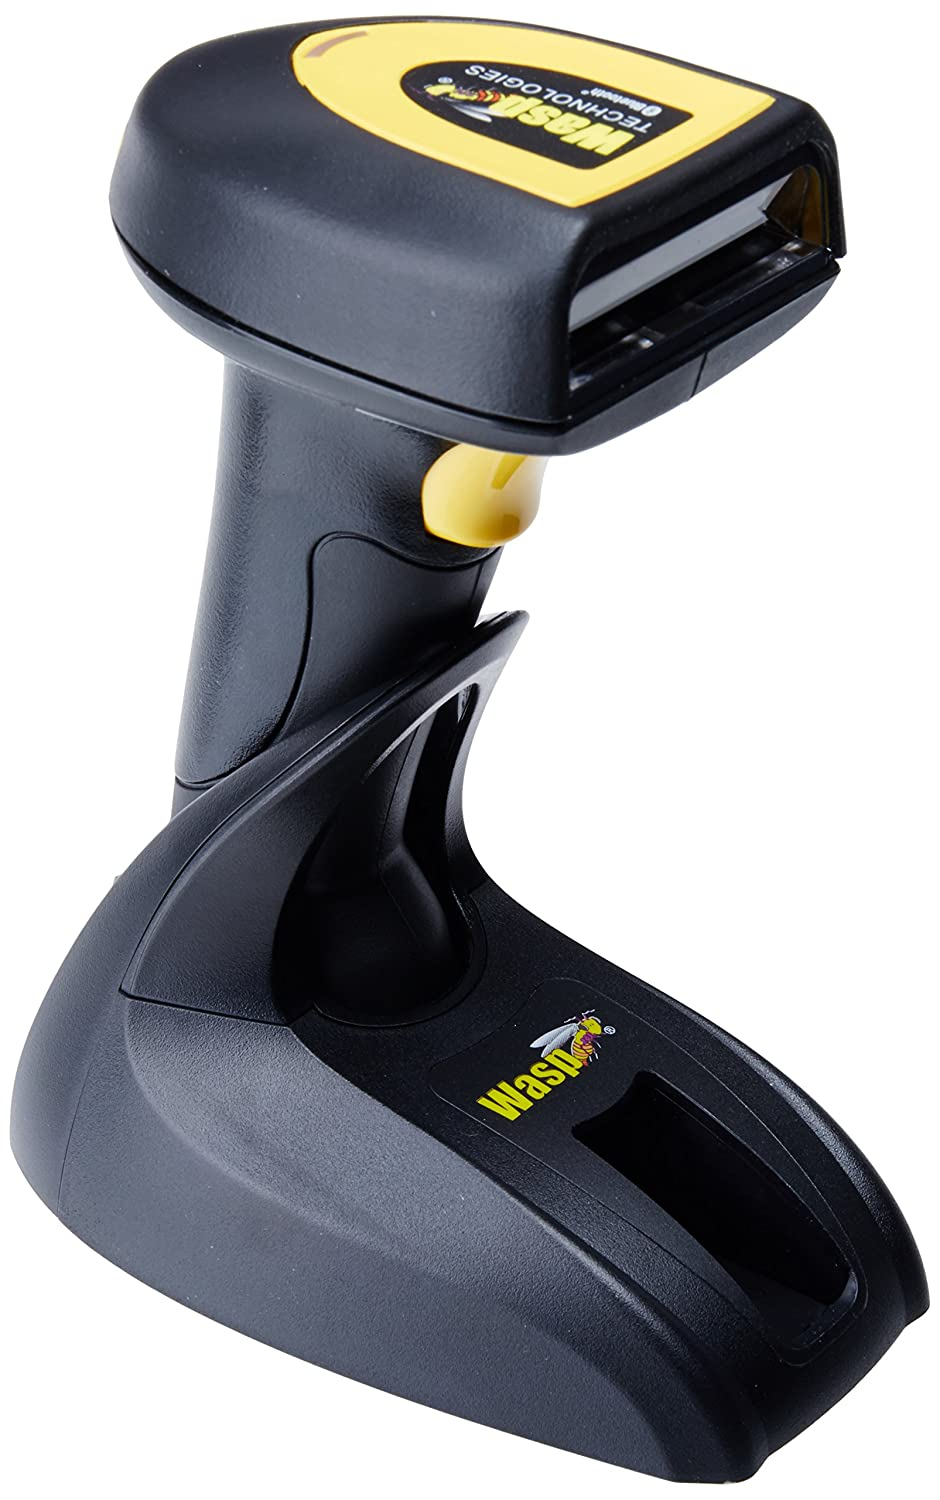 Wasp WWS800 Freedom Cordless Barcode Scanner